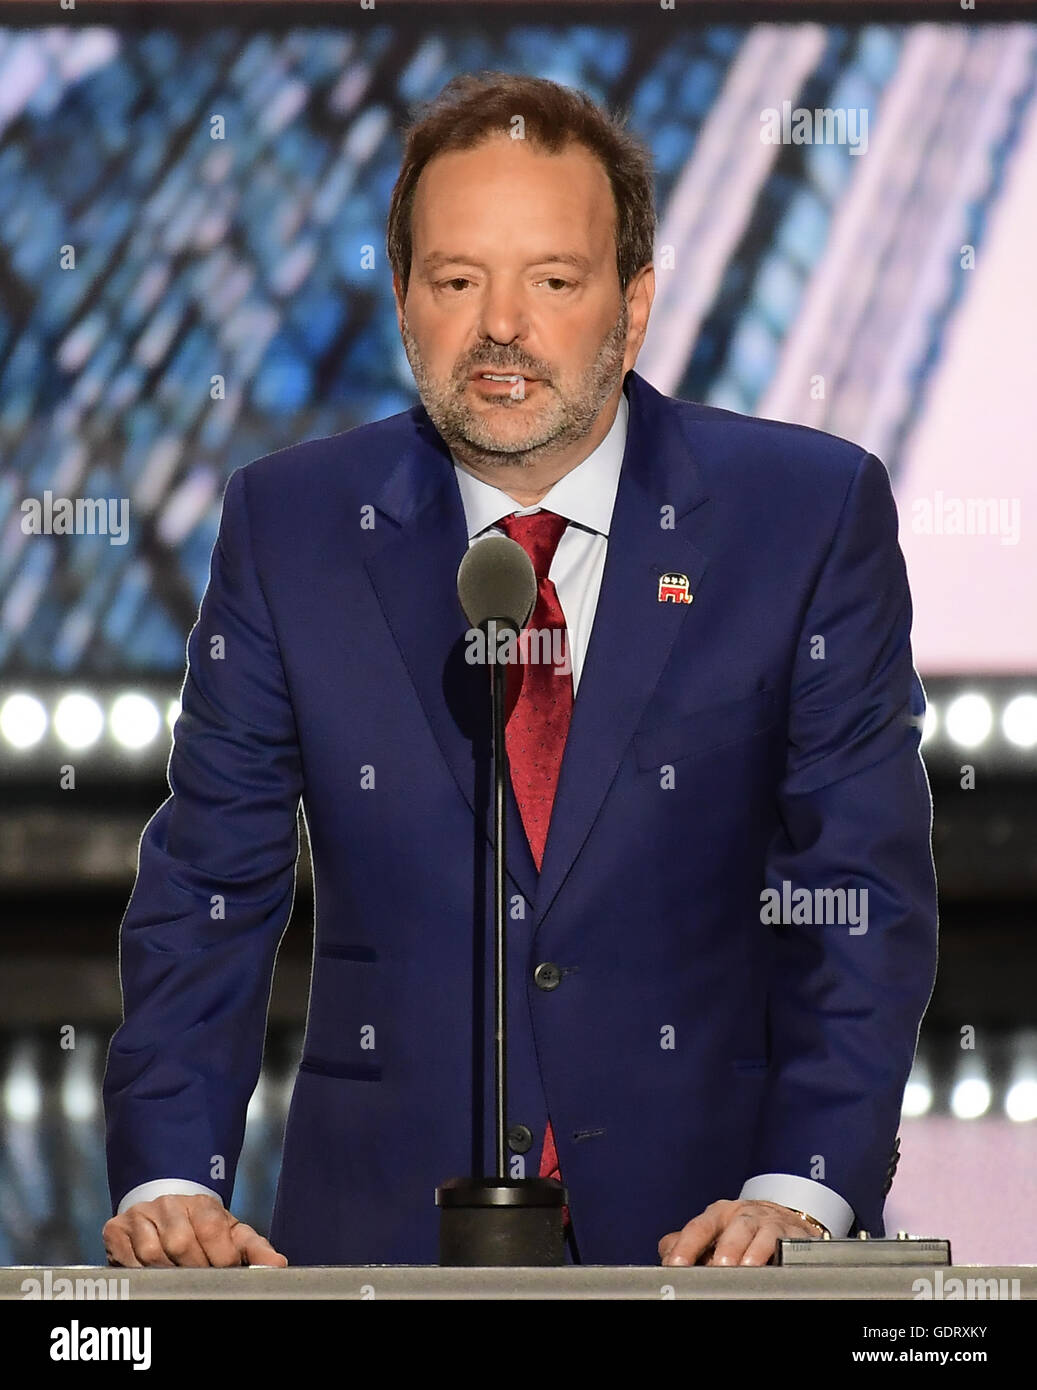 Cleveland, Ohio, USA. 19th July, 2016. Businessman Andy Wist of Brooklyn, New York makes remarks at the 2016 Republican - Stock Image